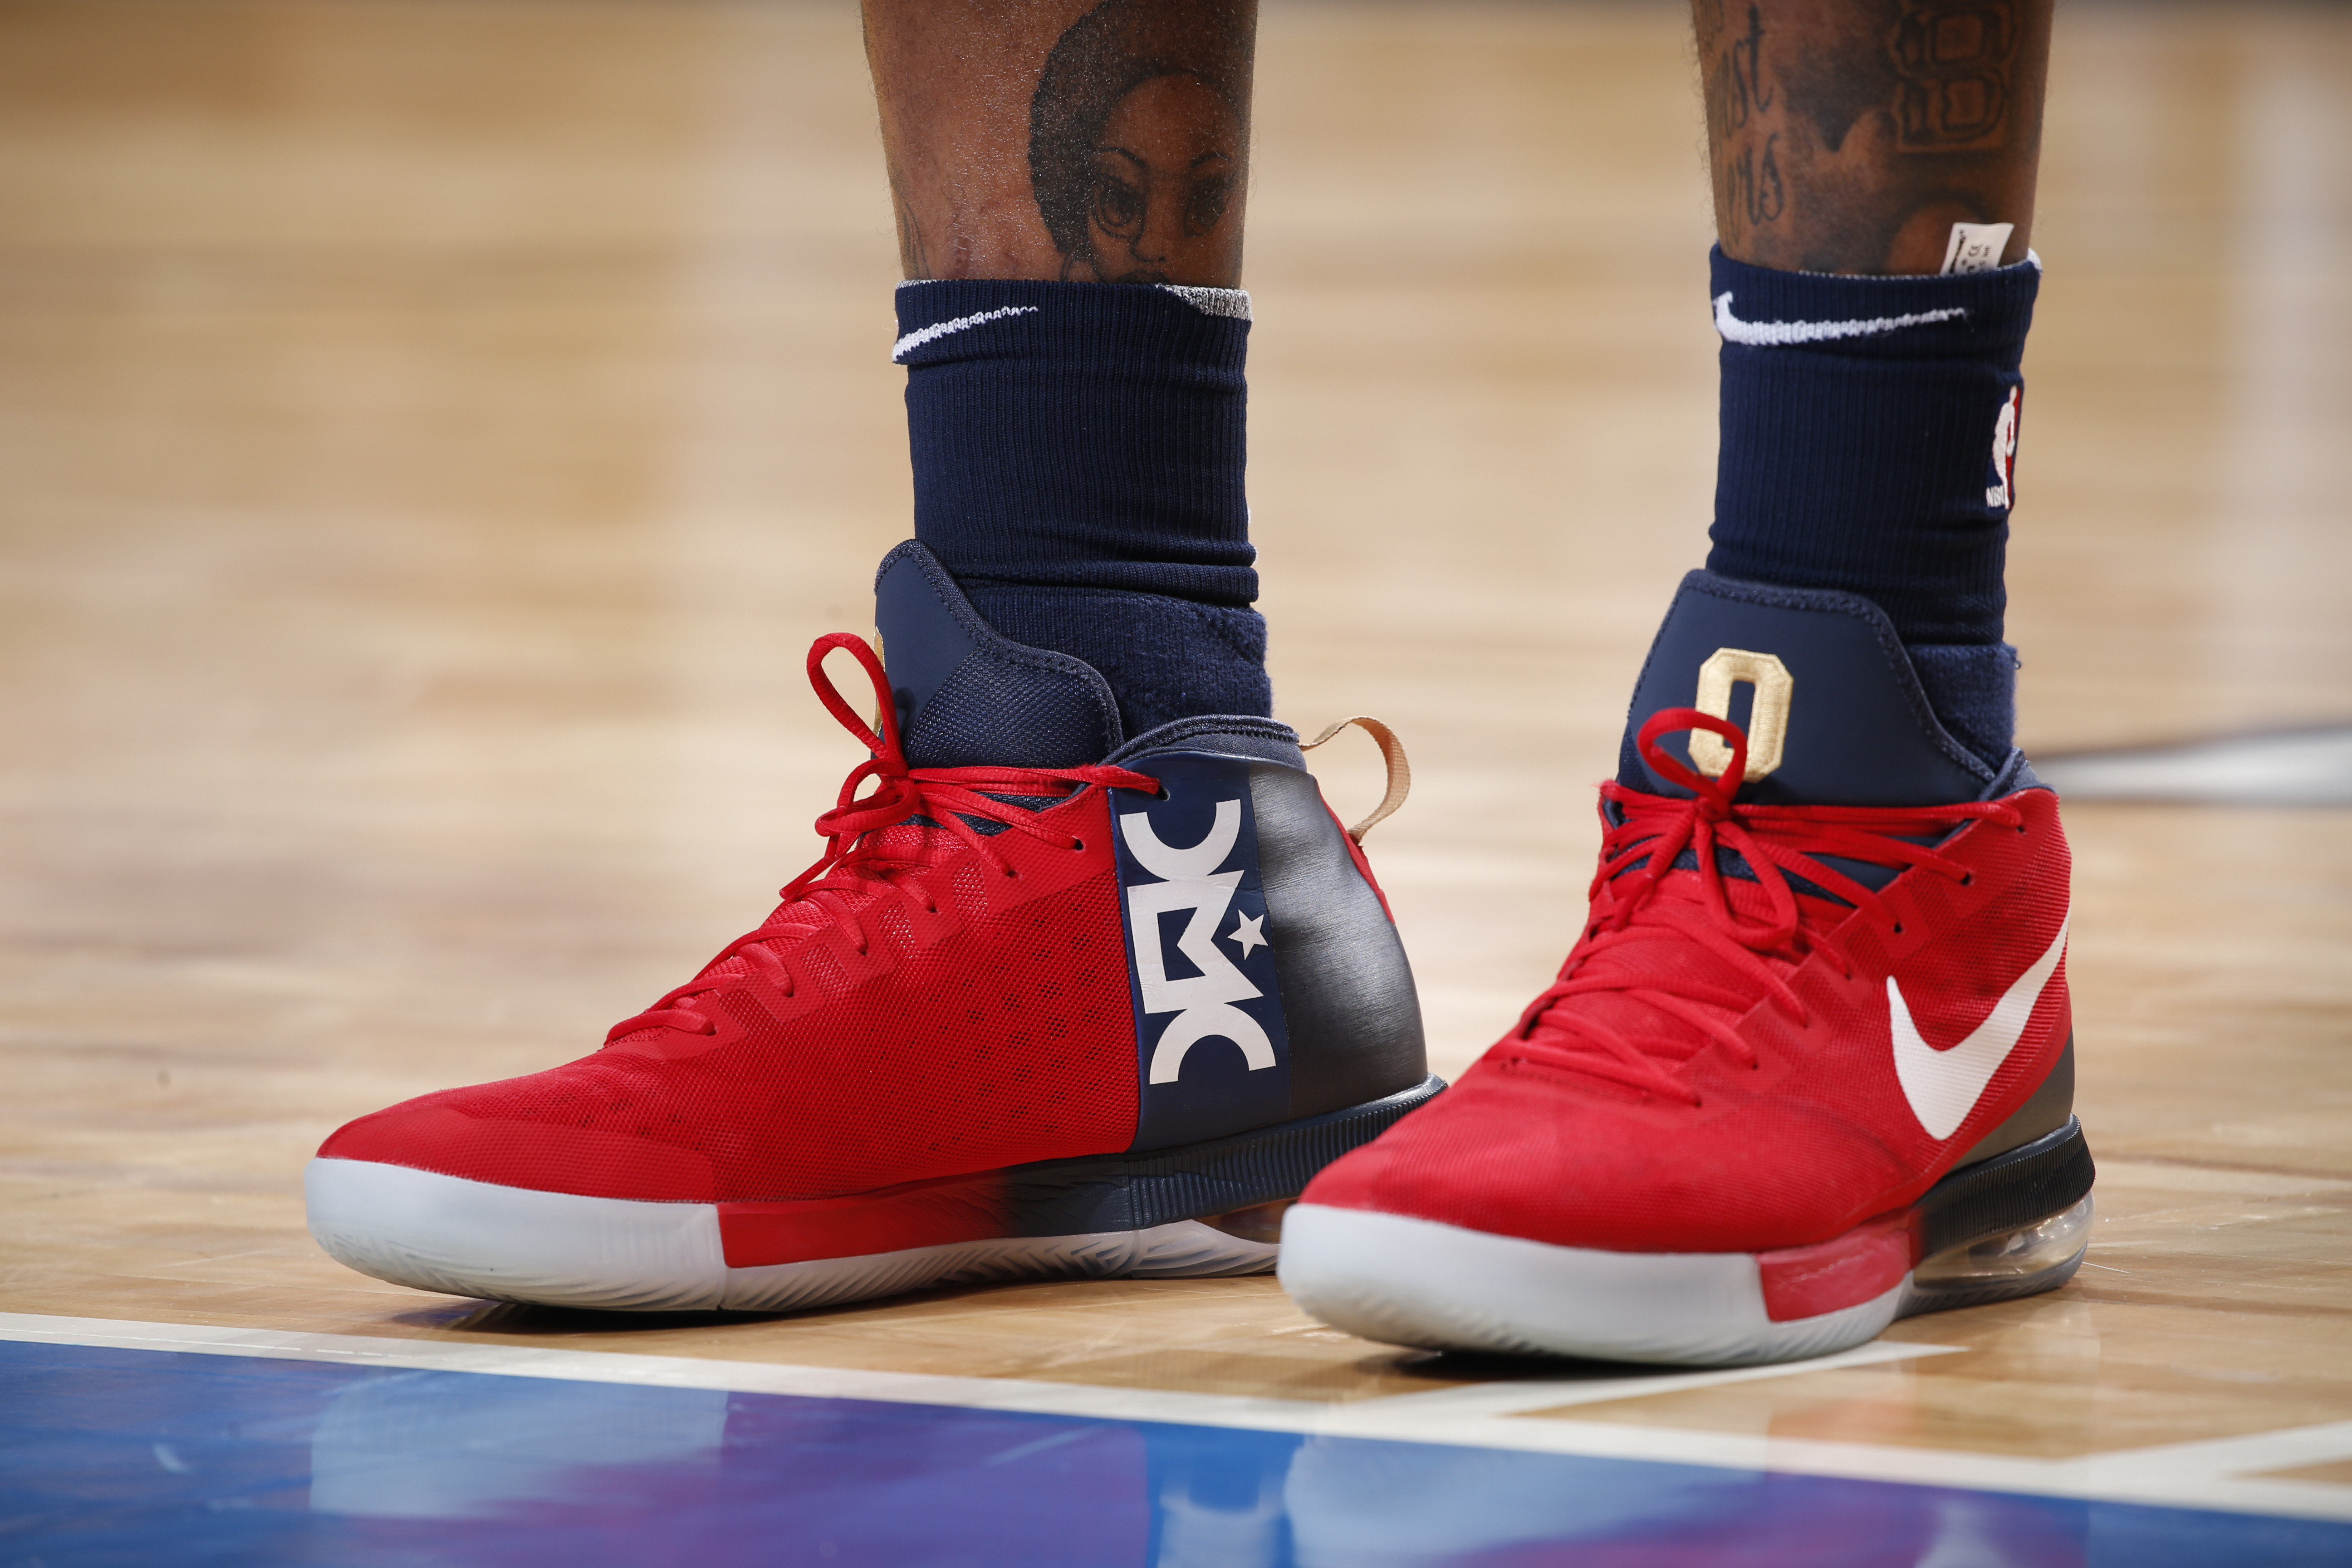 Remy ma and nicki minaj and the diss record heard round the world the sneakers worn by new orleans pelicans center demarcus cousins during a game against the dallas mavericks on nov 3 2017 malvernweather Images